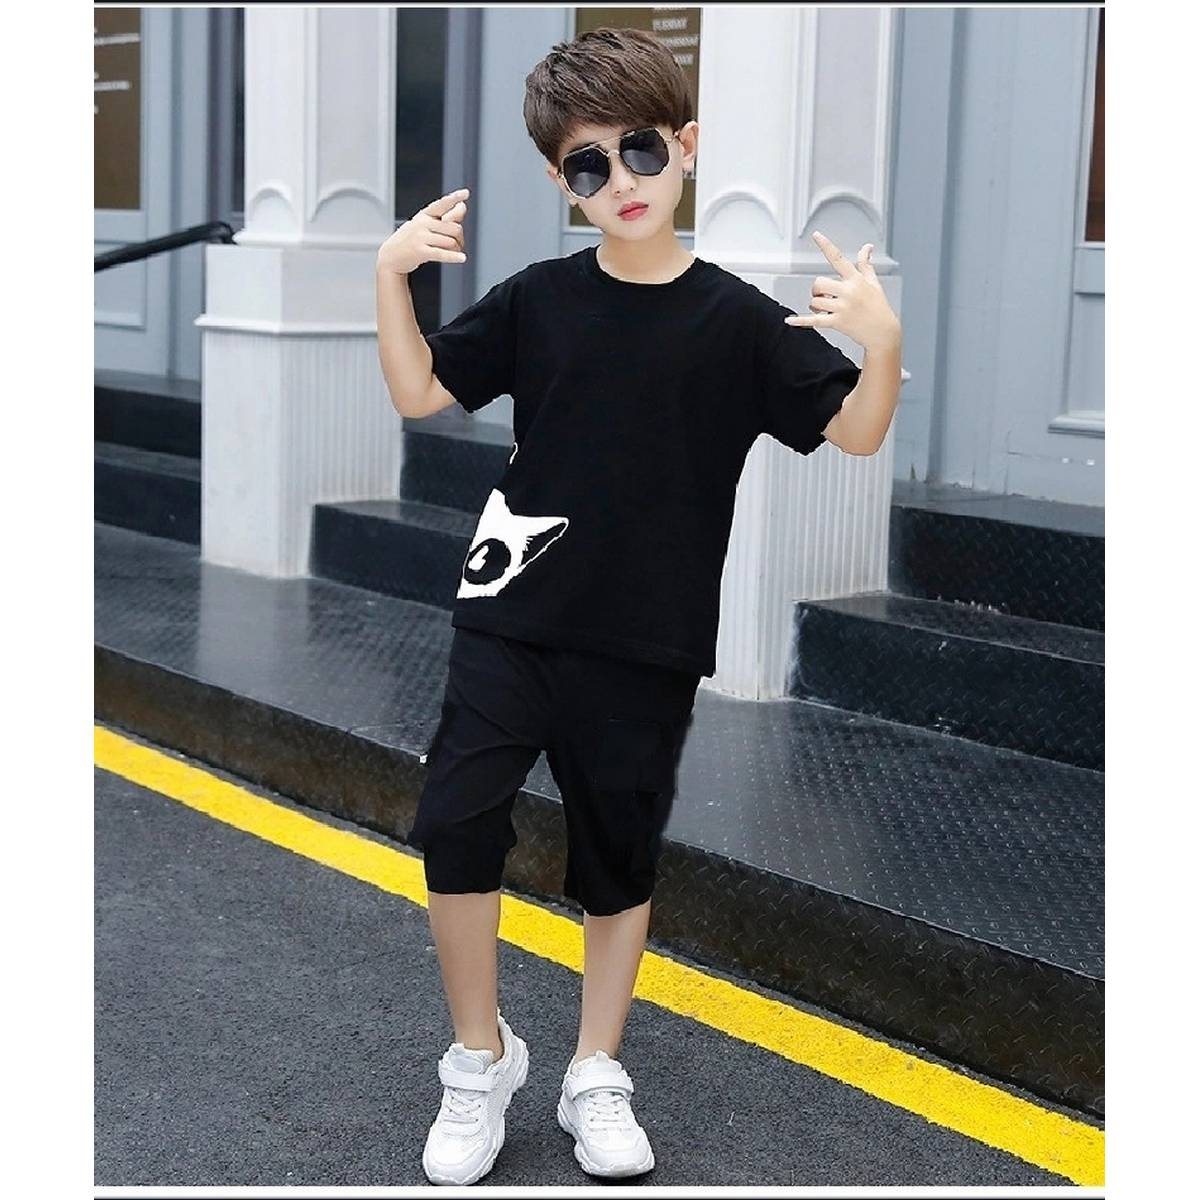 T Shirt And Shorts For Kids Baby Boys Round Neck Short Sleeves Tee Tops Cloths Set Dresses Outfit